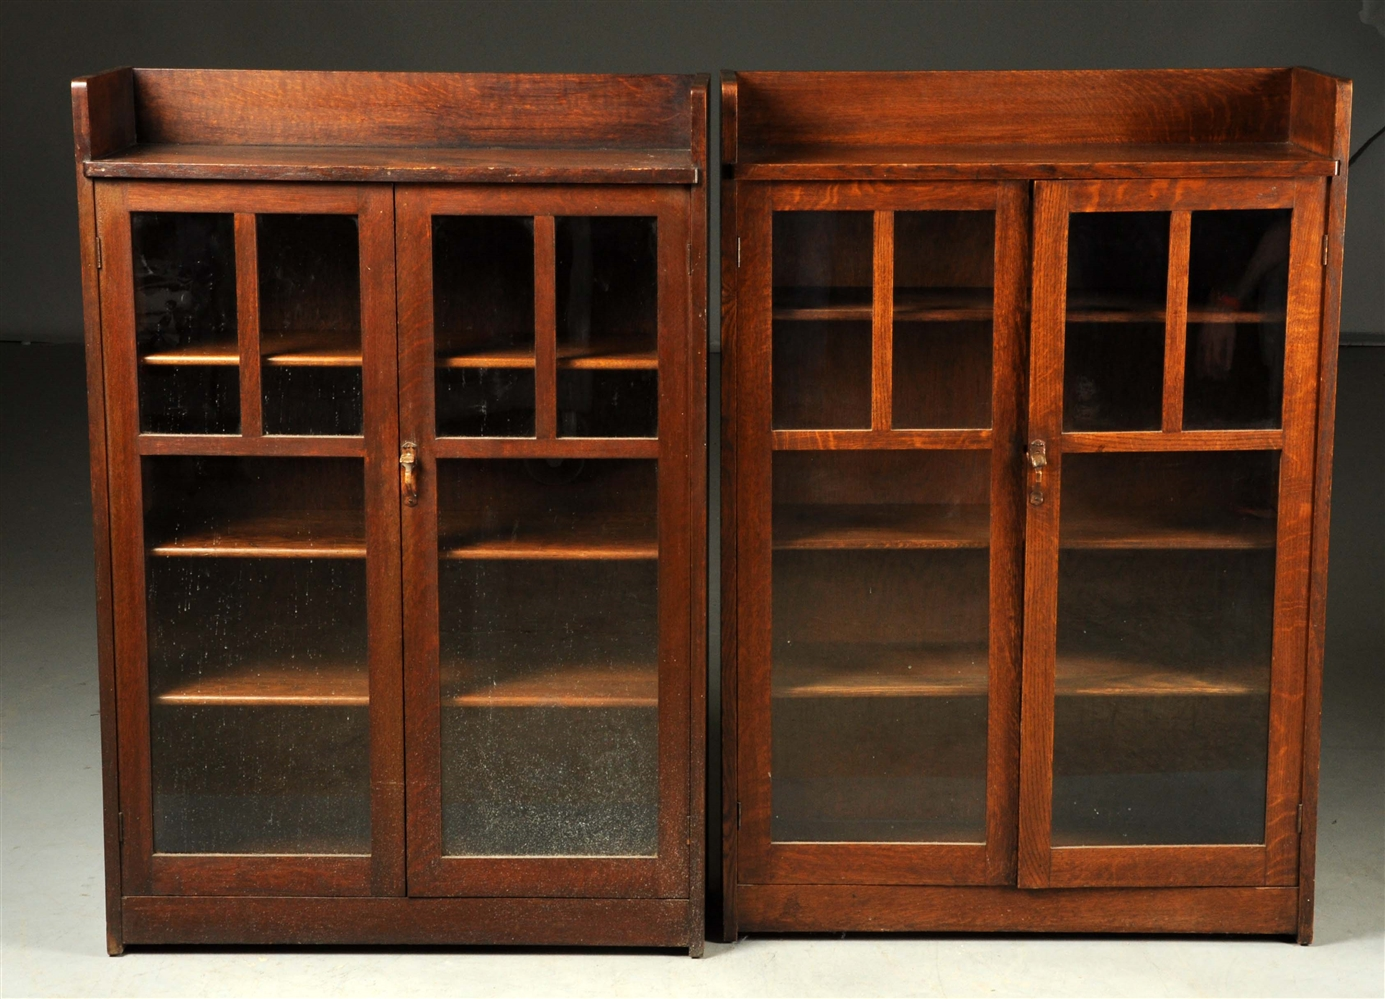 Pair of Limbert Arts & Crafts Two Door Bookcases No. 340.